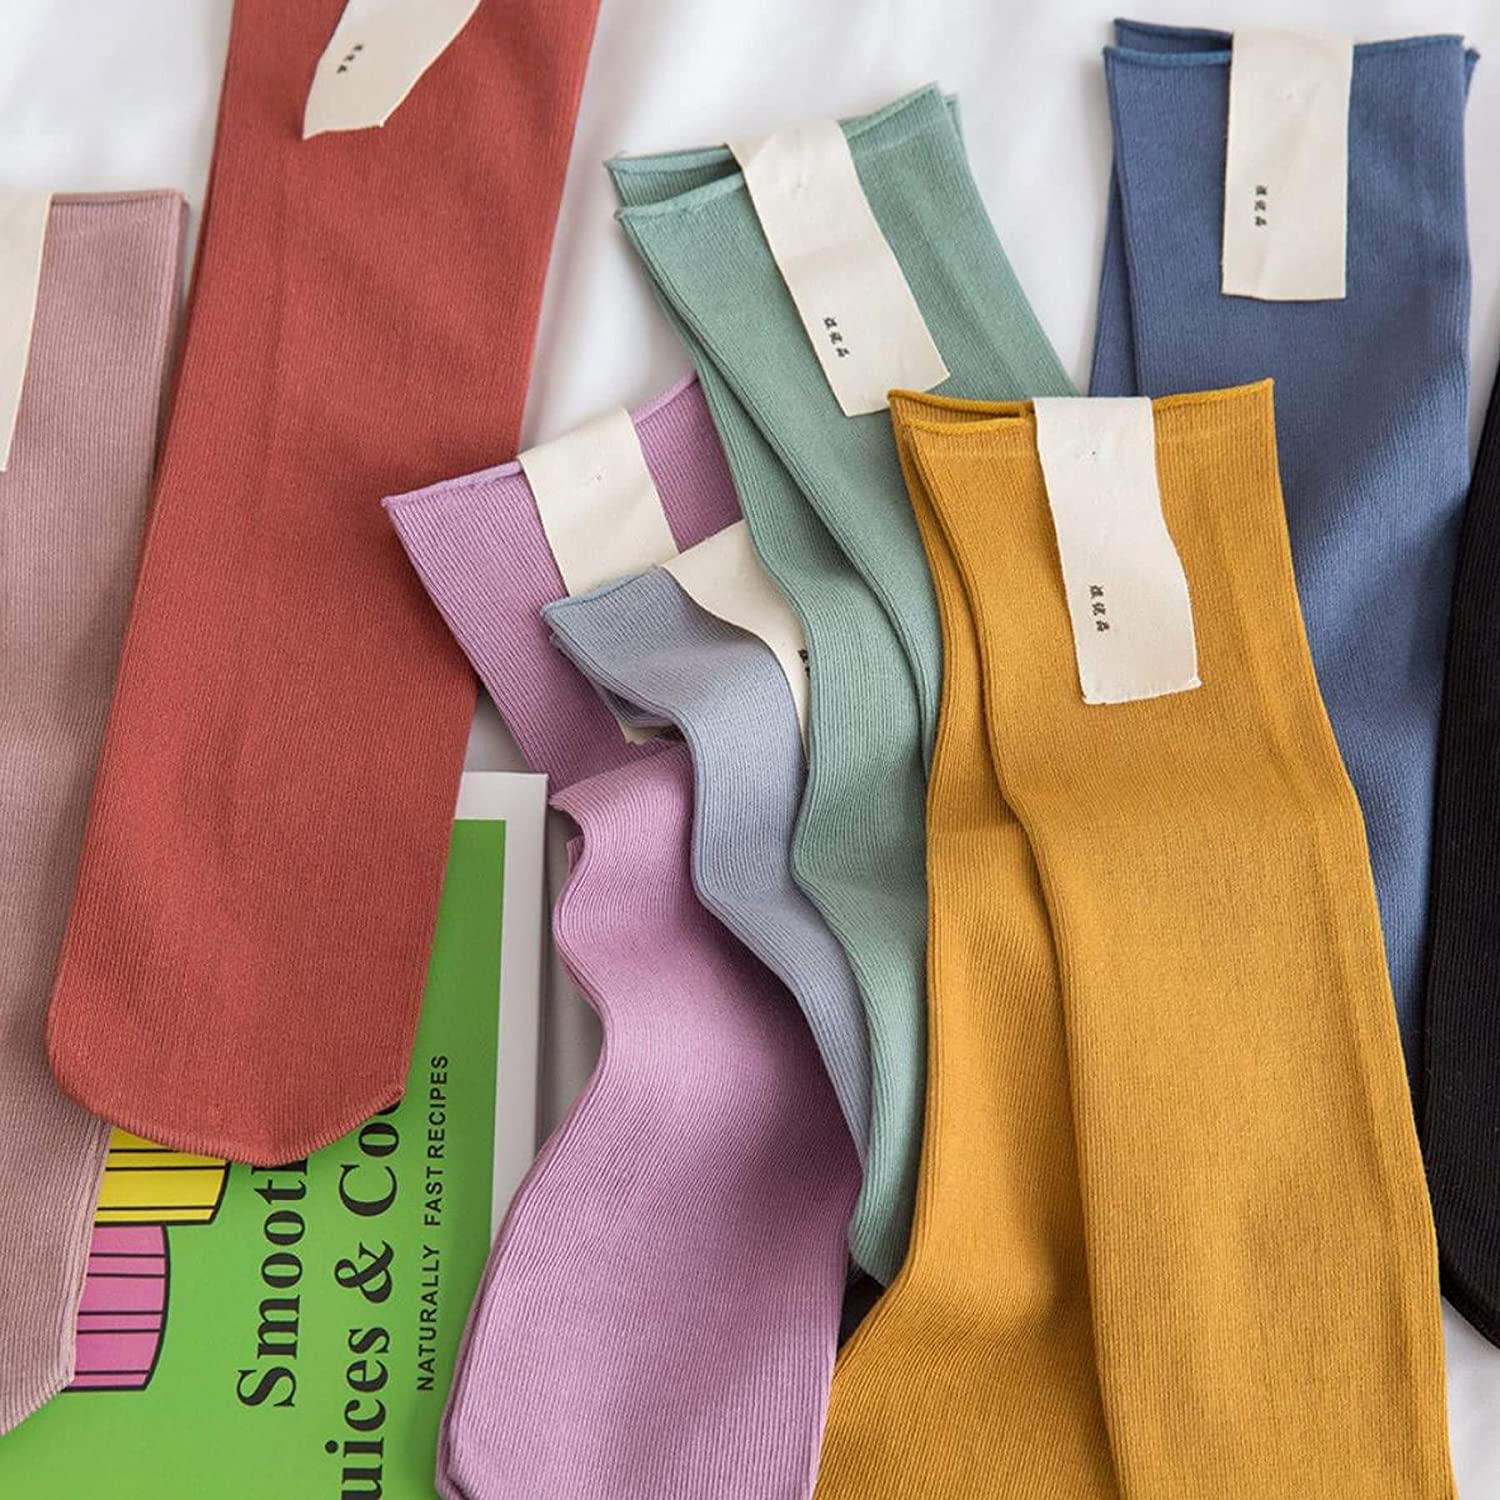 TeenFighter 11 Pairs of Comfortable Casual Cotton Socks for Women, Crew Size for Sports, Solid Color Stretch Socks for Girls